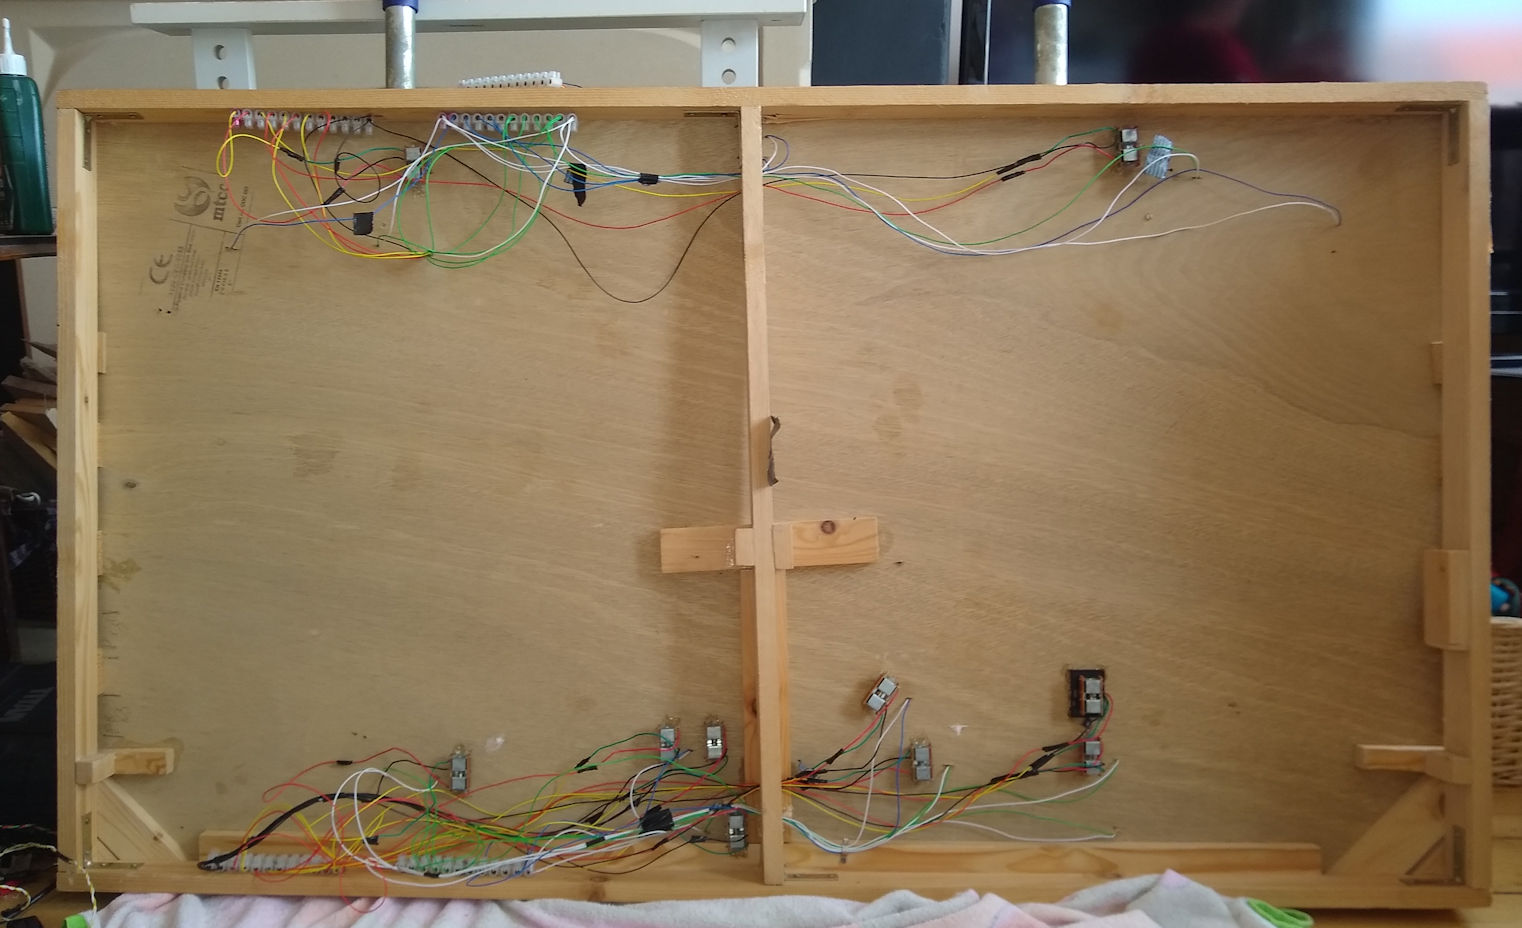 StoweyGreen Base Wired - Awaiting Final Wire Up